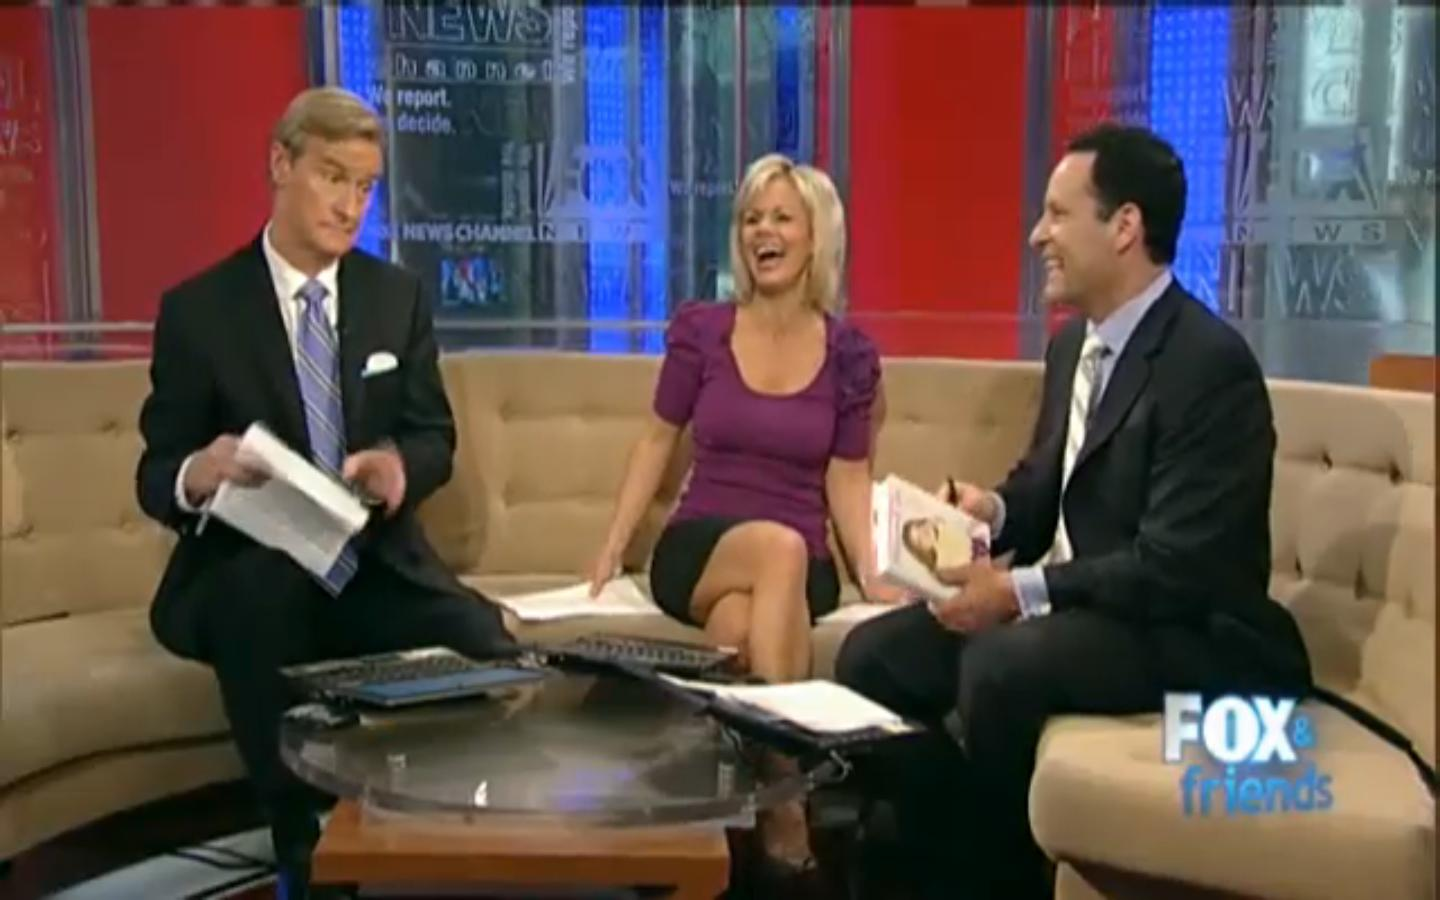 Fox News In The Morning Two Guys In Business Suits One